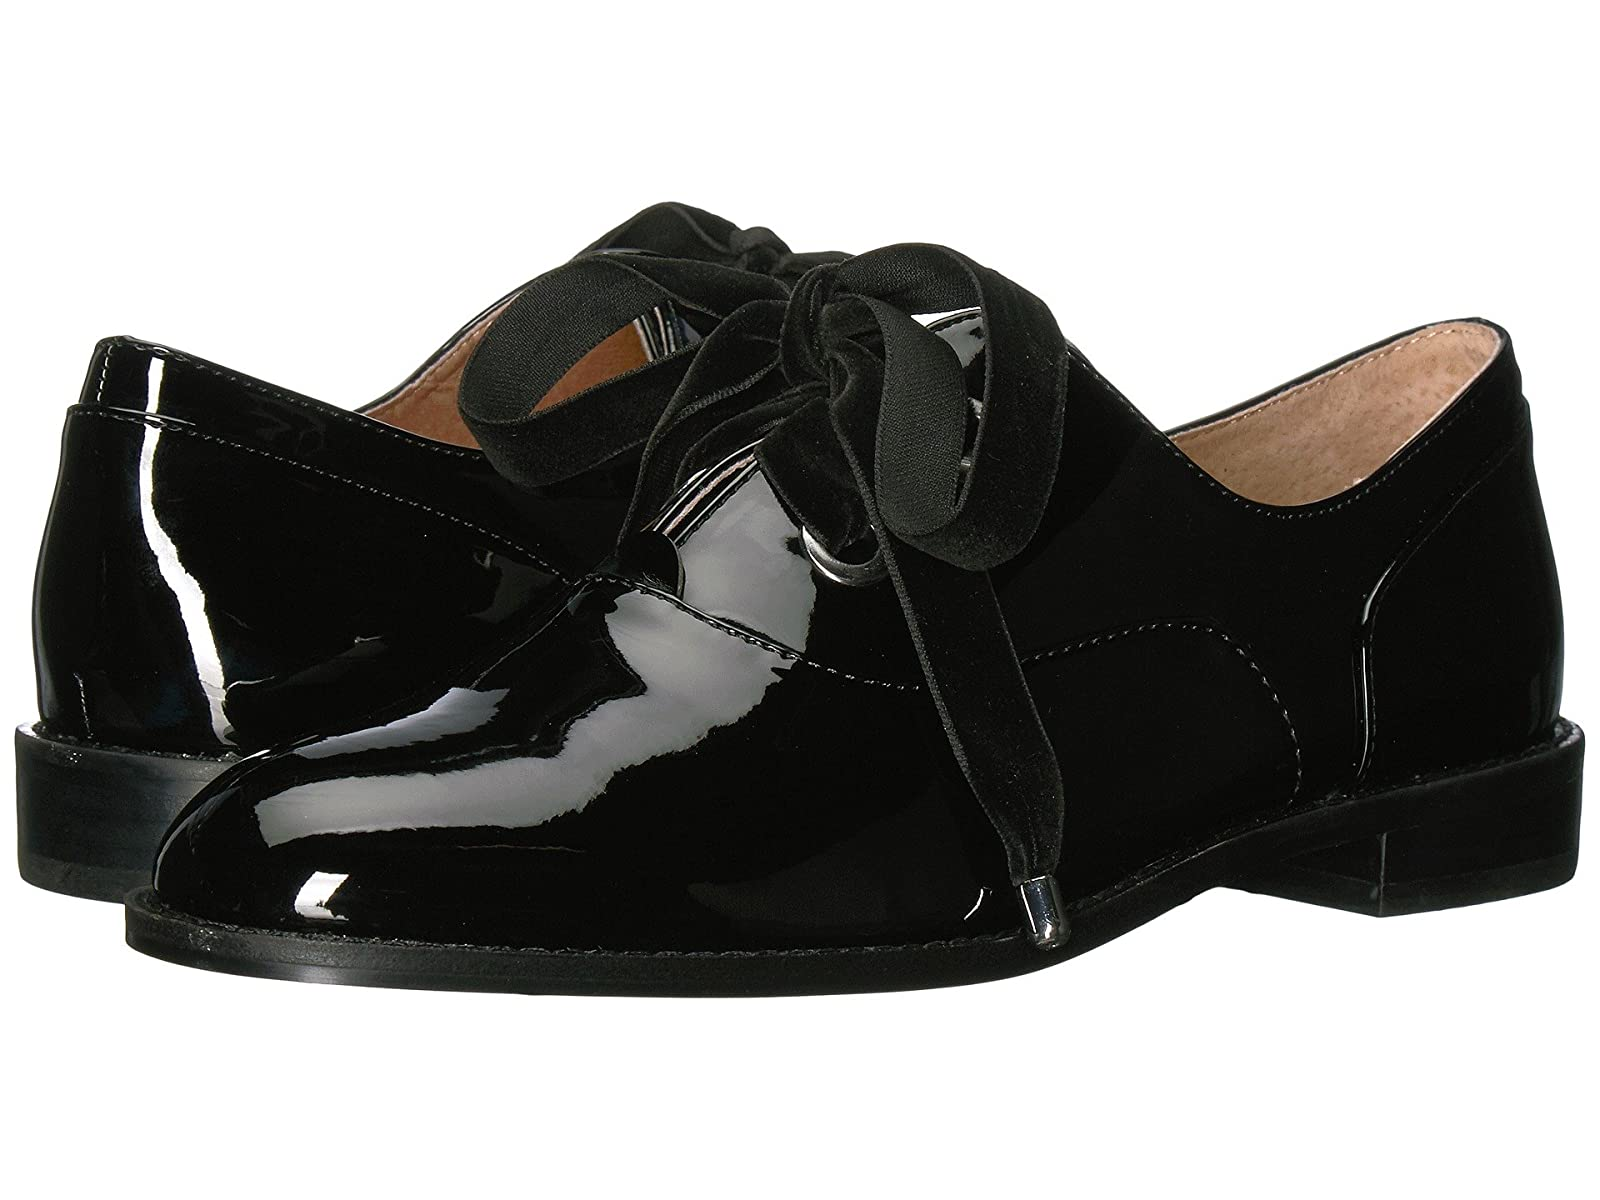 Shellys London Frankie OxfordCheap and distinctive eye-catching shoes